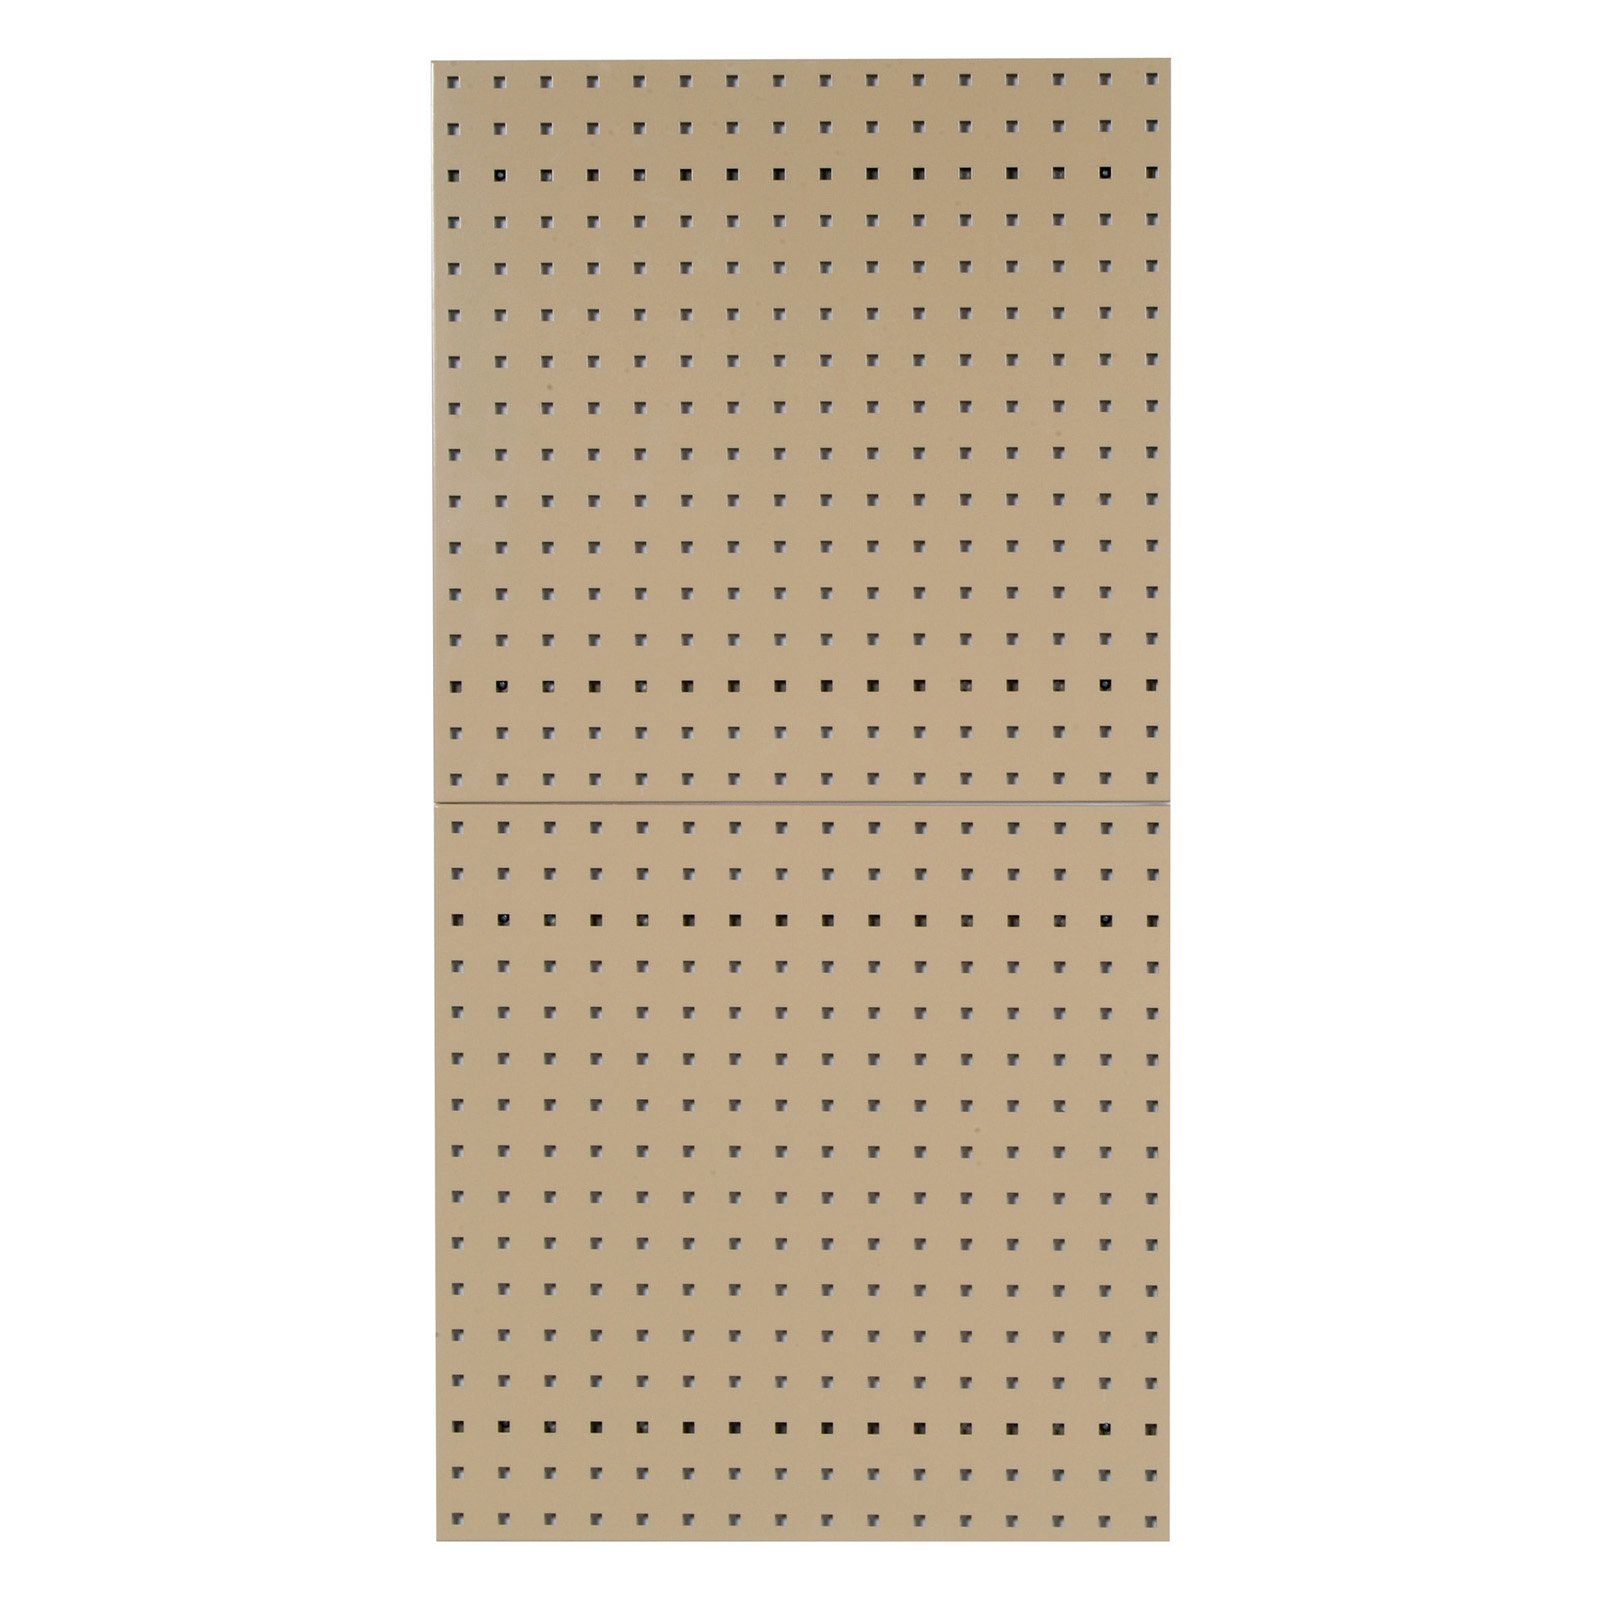 Triton LocBoard Epoxy Coated Square Hole Pegboard - Set of 2